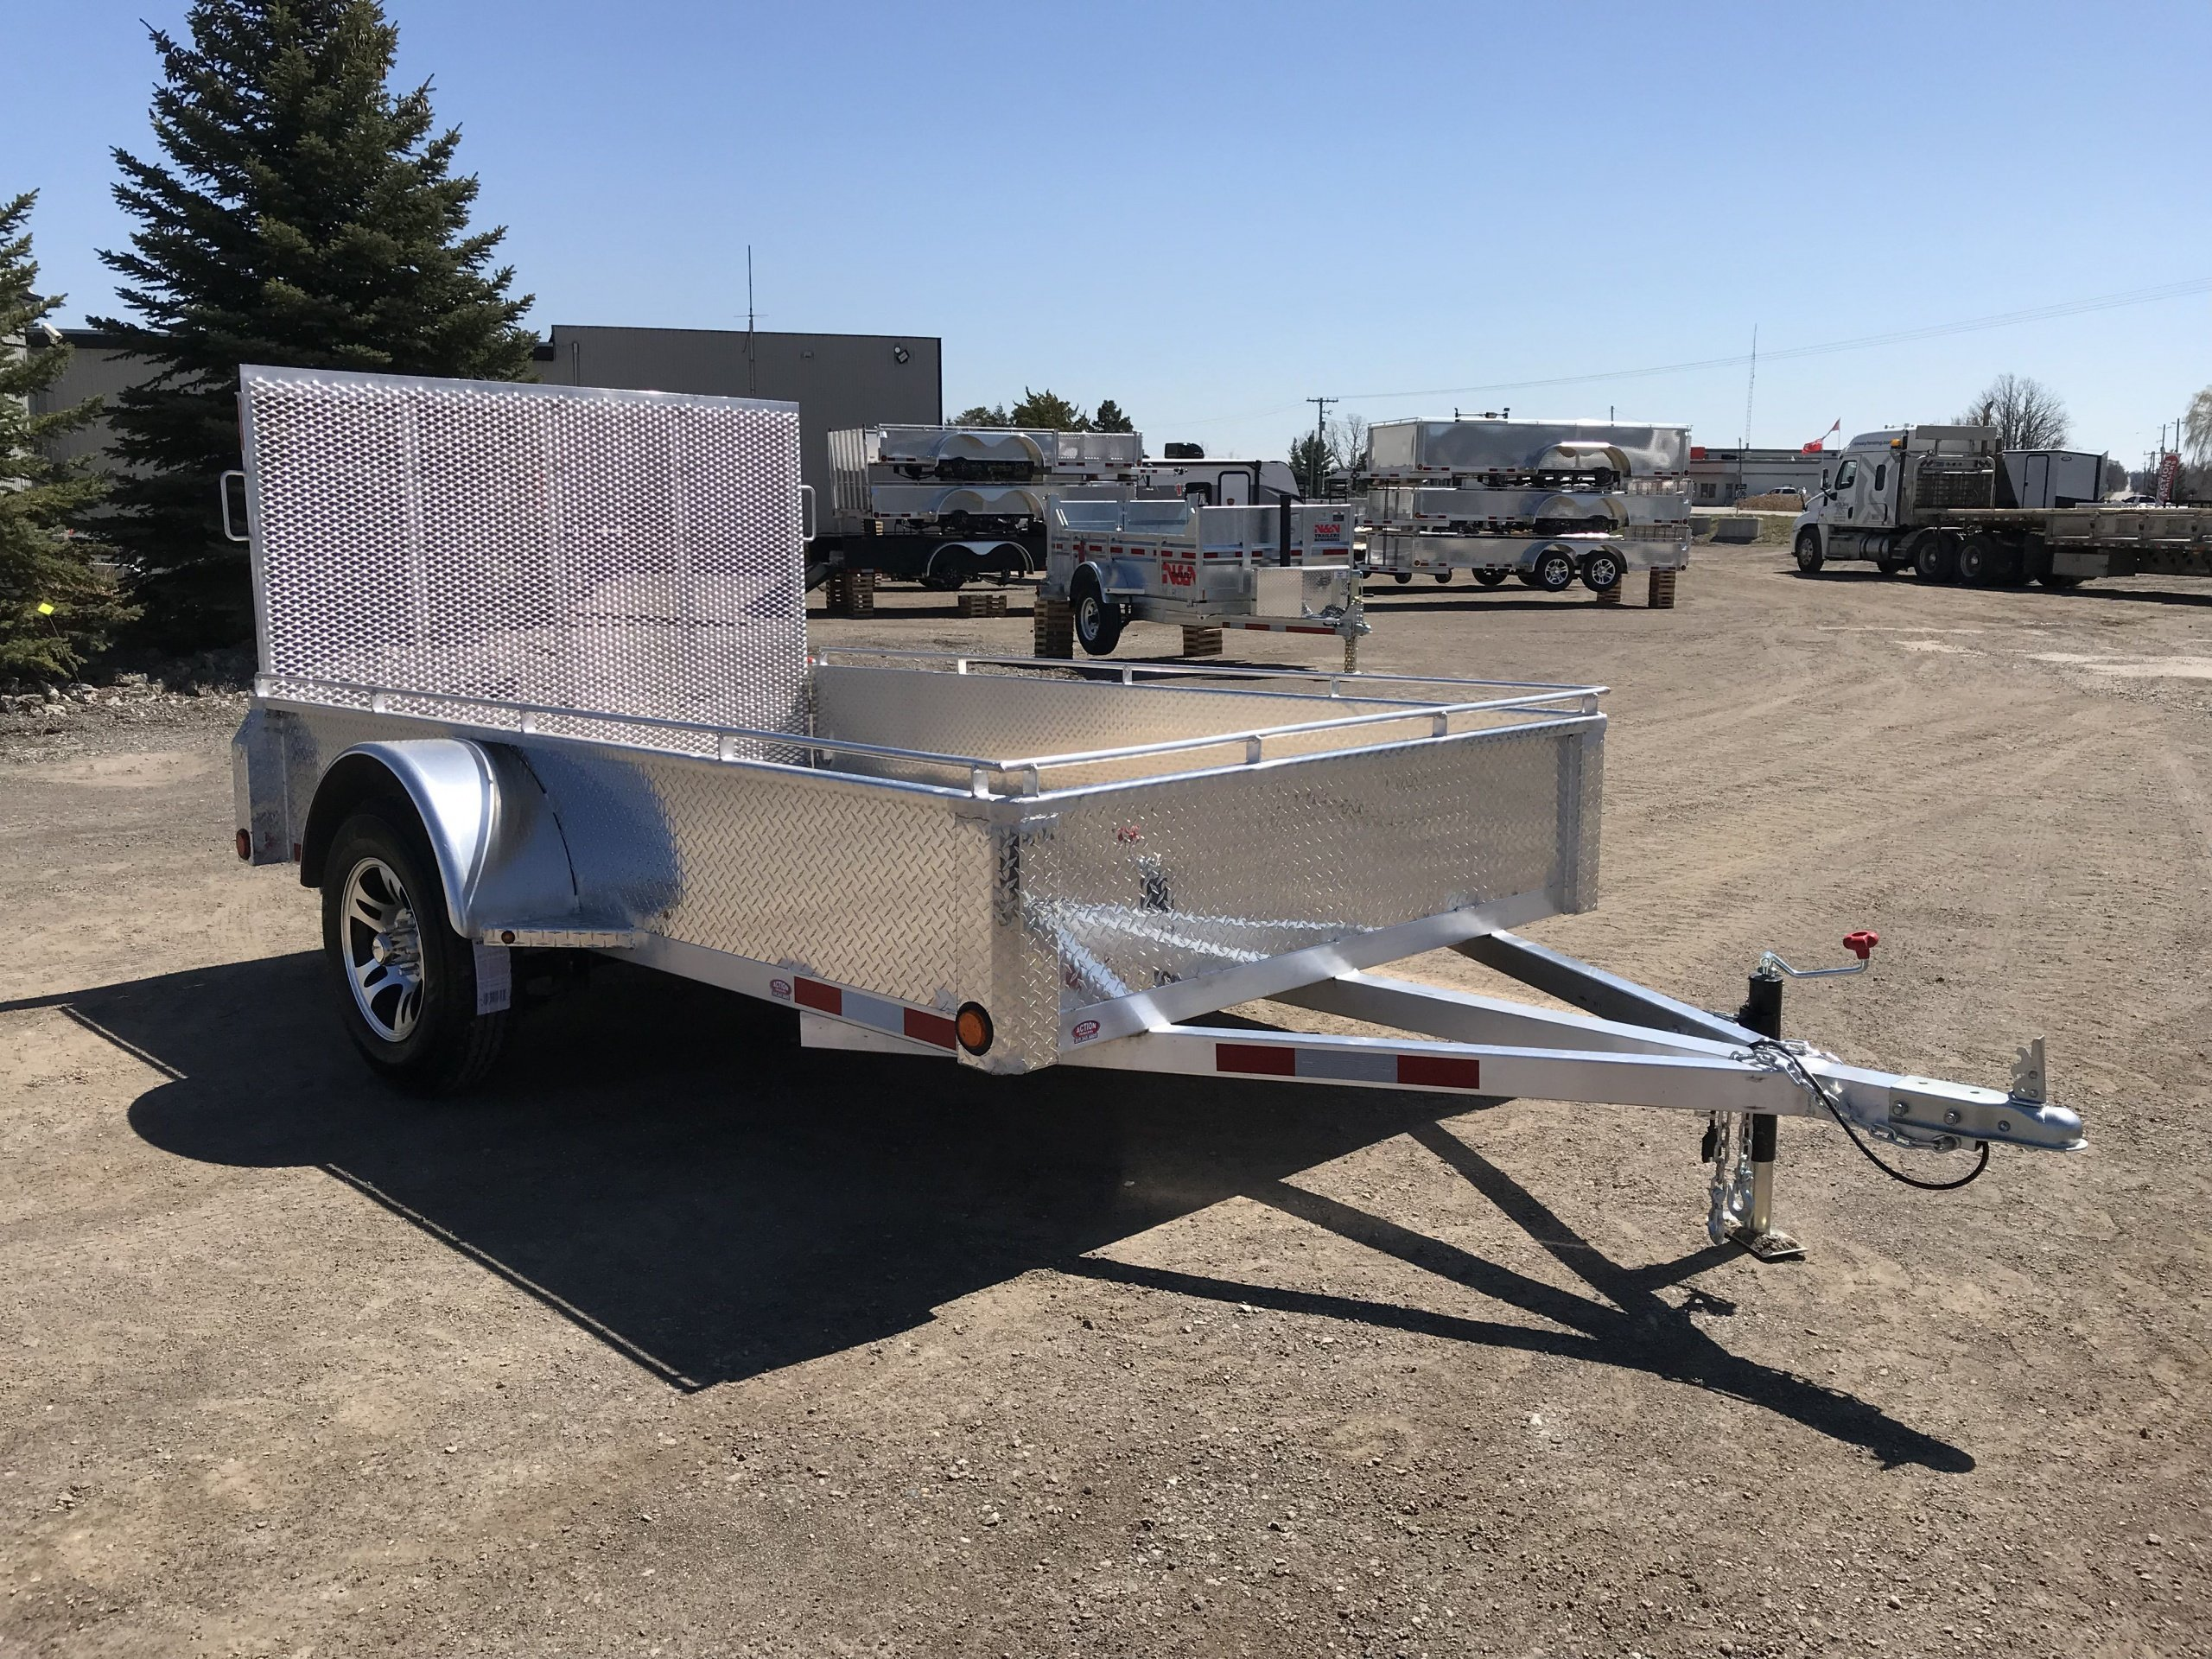 2021 ALL ALUMINUM ACTION SERIES 6X10 SINGLE AXLE UTILITY TRAILER WITH REAR MESHED STRAIGHT GATE + ALUMINUM RIMS STD & BONUS TOP TIE DOWN RAILS!! - SERIAL# 4211